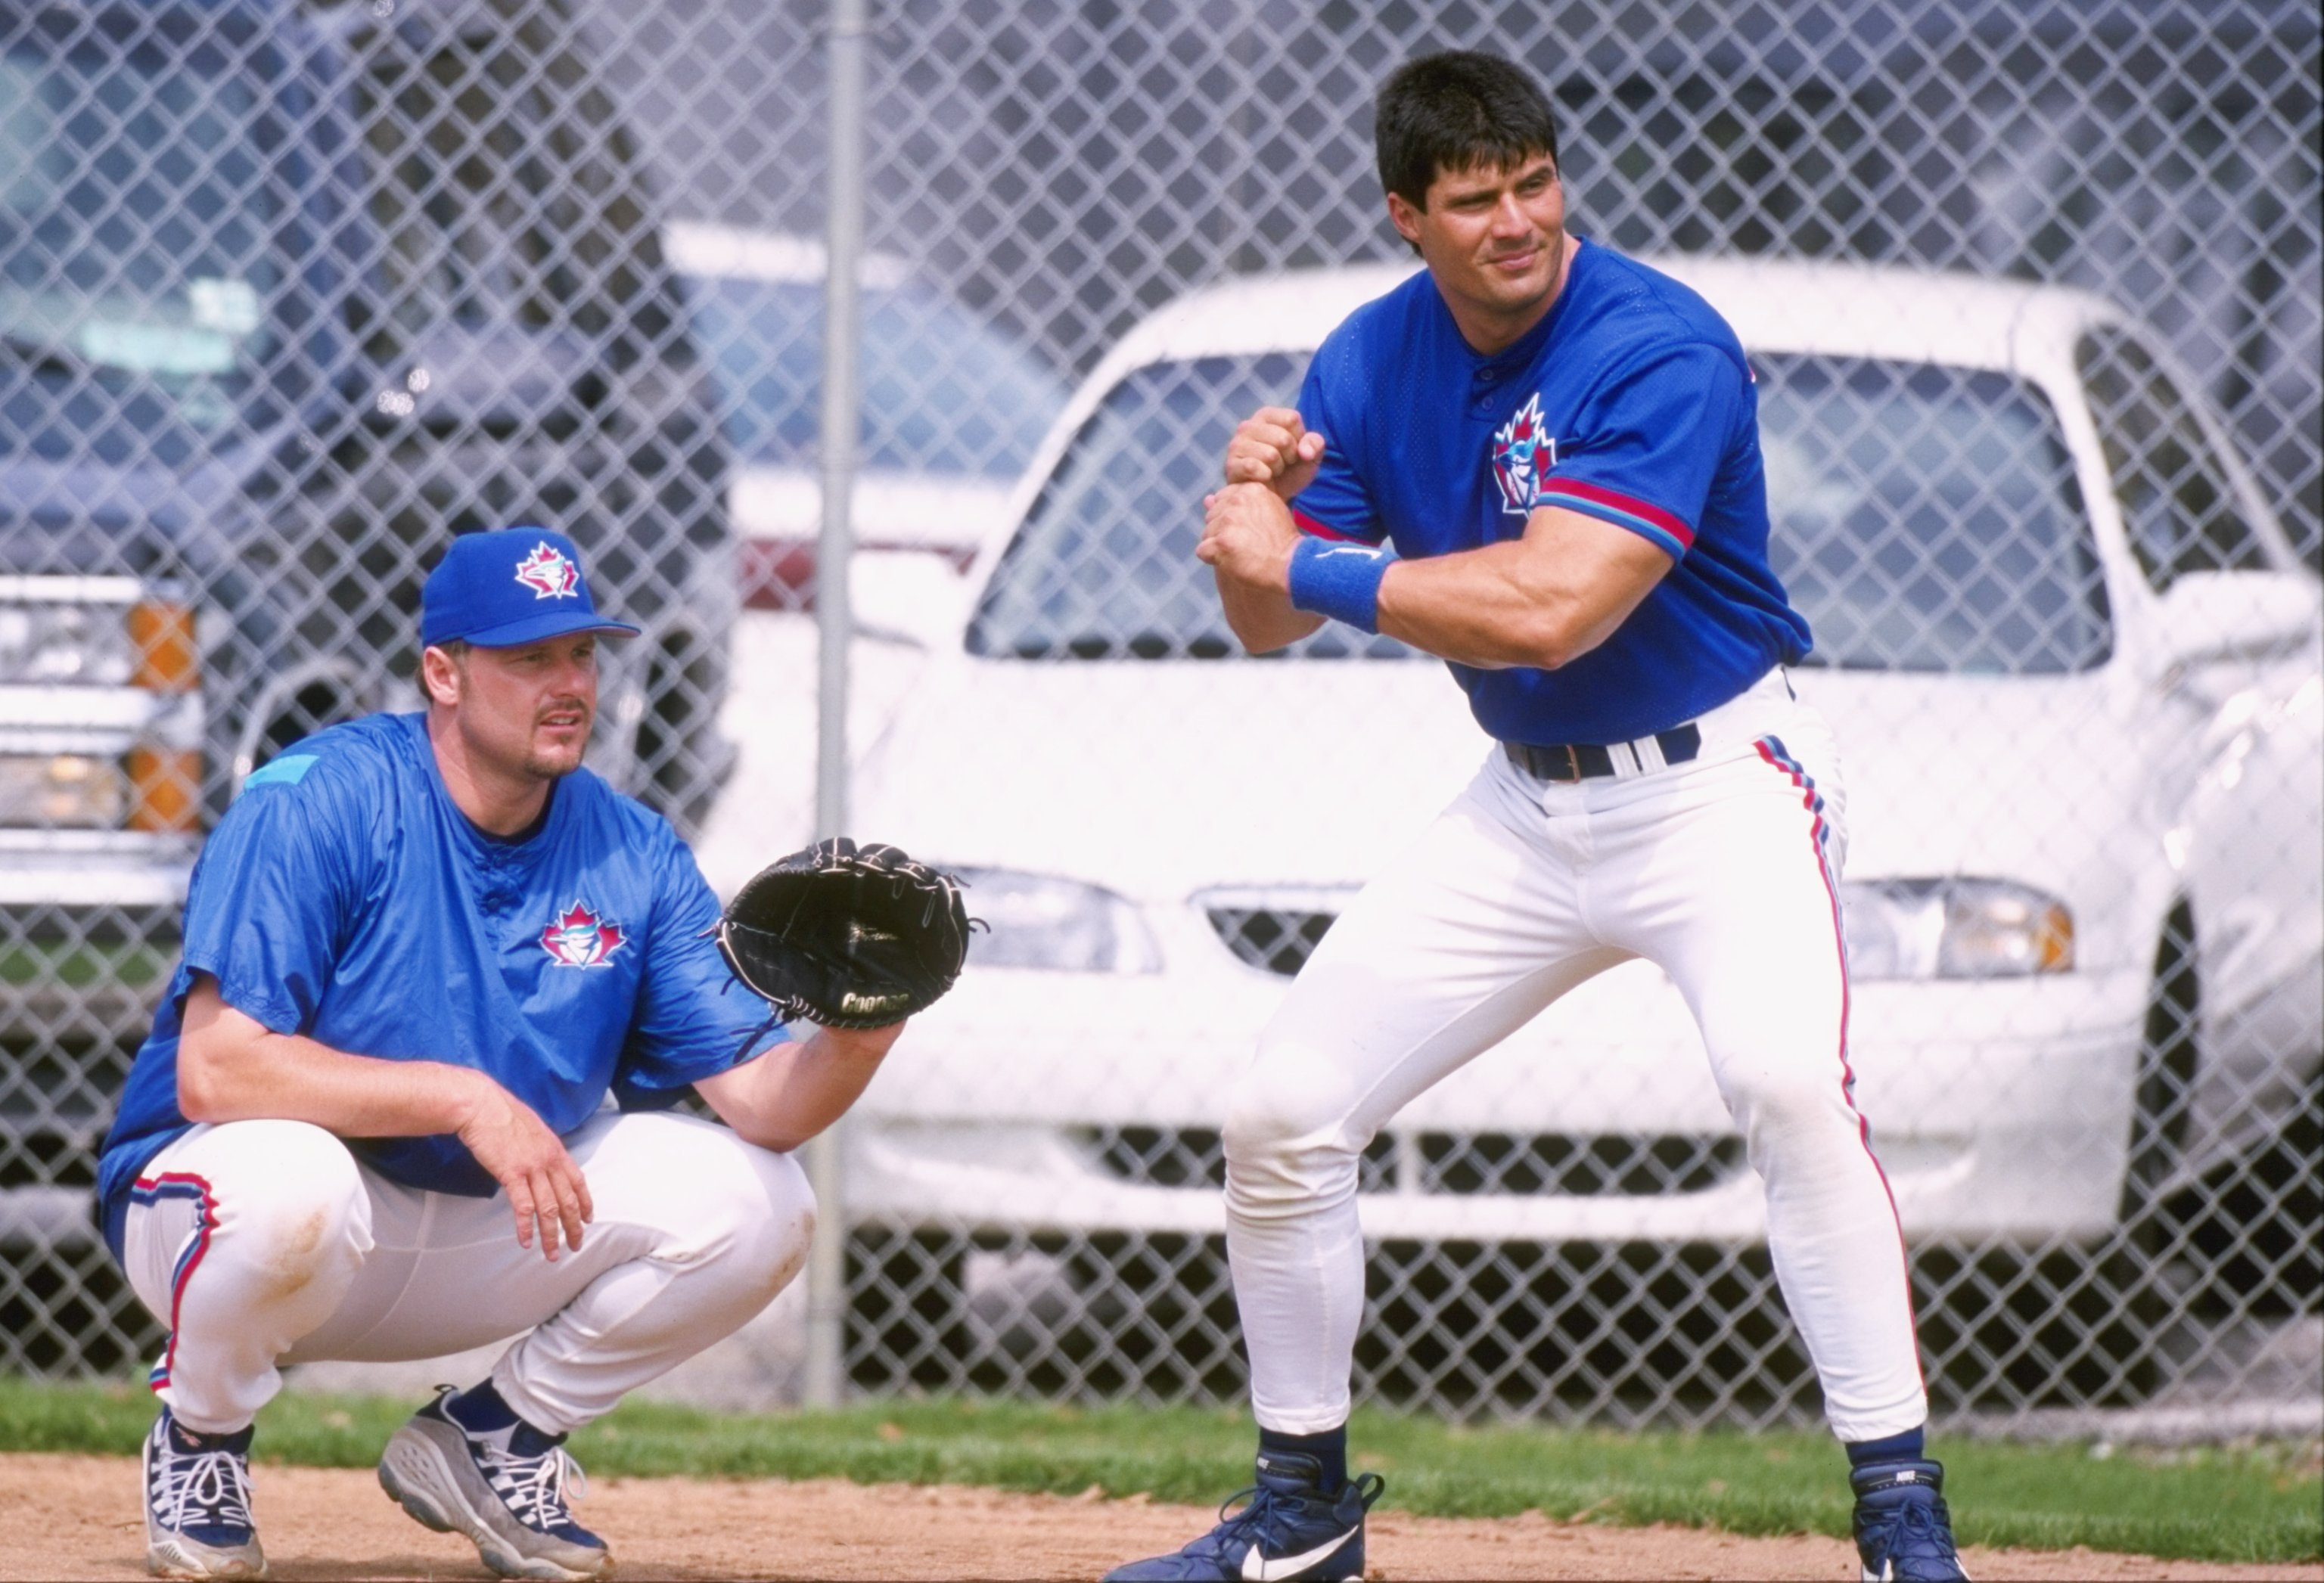 1 Mar 1998:  Jose Canseco #00 and Roger Clemens #21 of the Toronto Blue Jays play around after a spring training game against the Pittsburgh Pirates at the Dunedin Stadium in Dunedin, Florida. The Toronto Blue Jays beat the Pittsburgh Pirates 4-3. Mandato